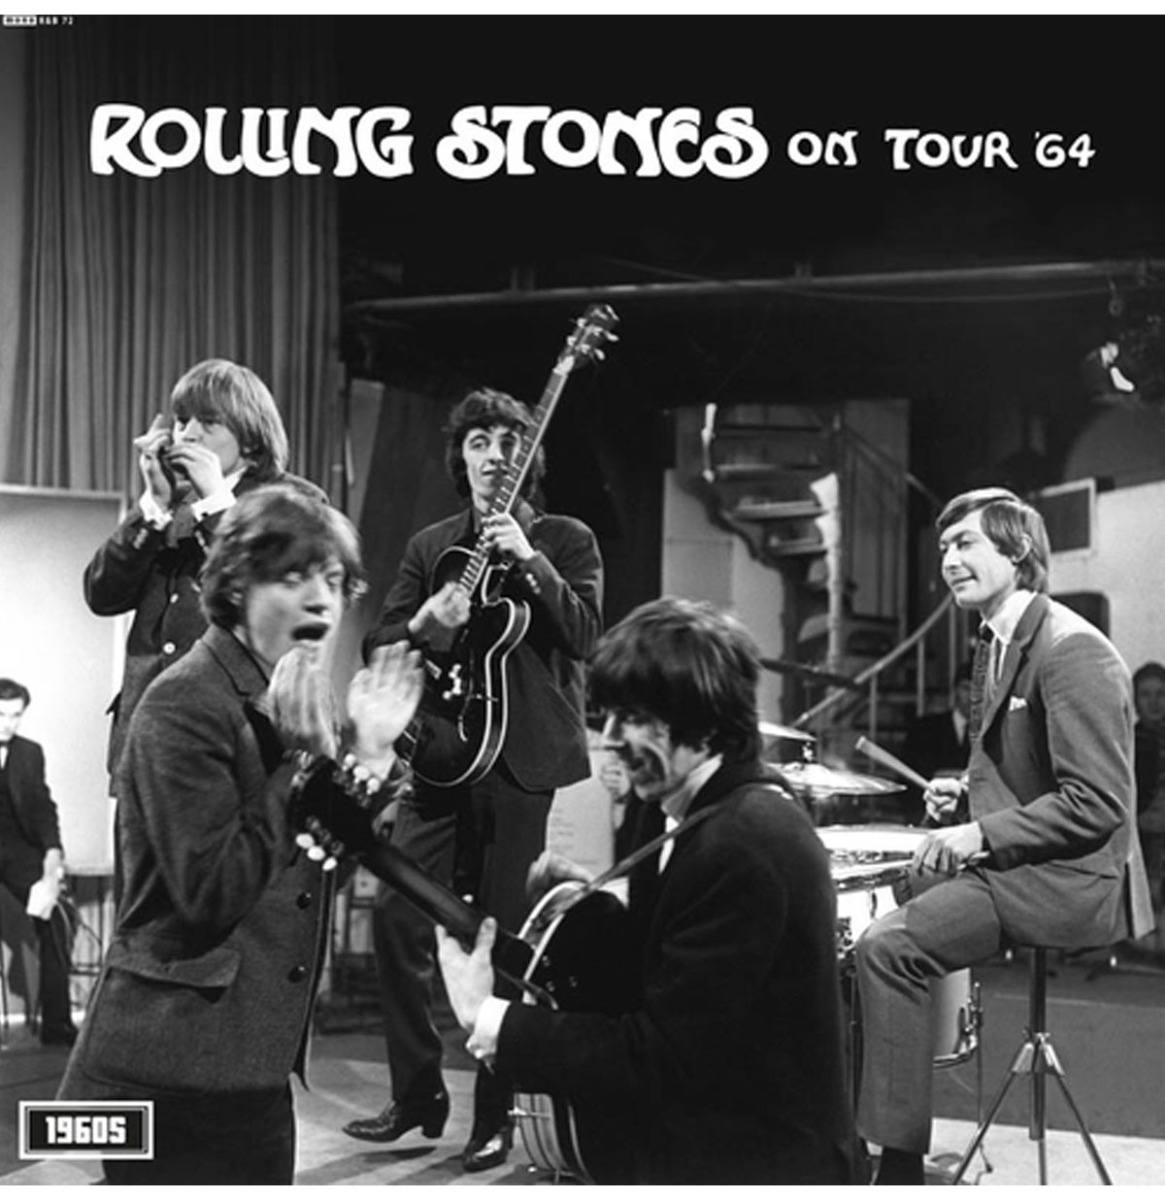 The Rolling Stones - Let The Airwaves Flow 6: On Tour '64